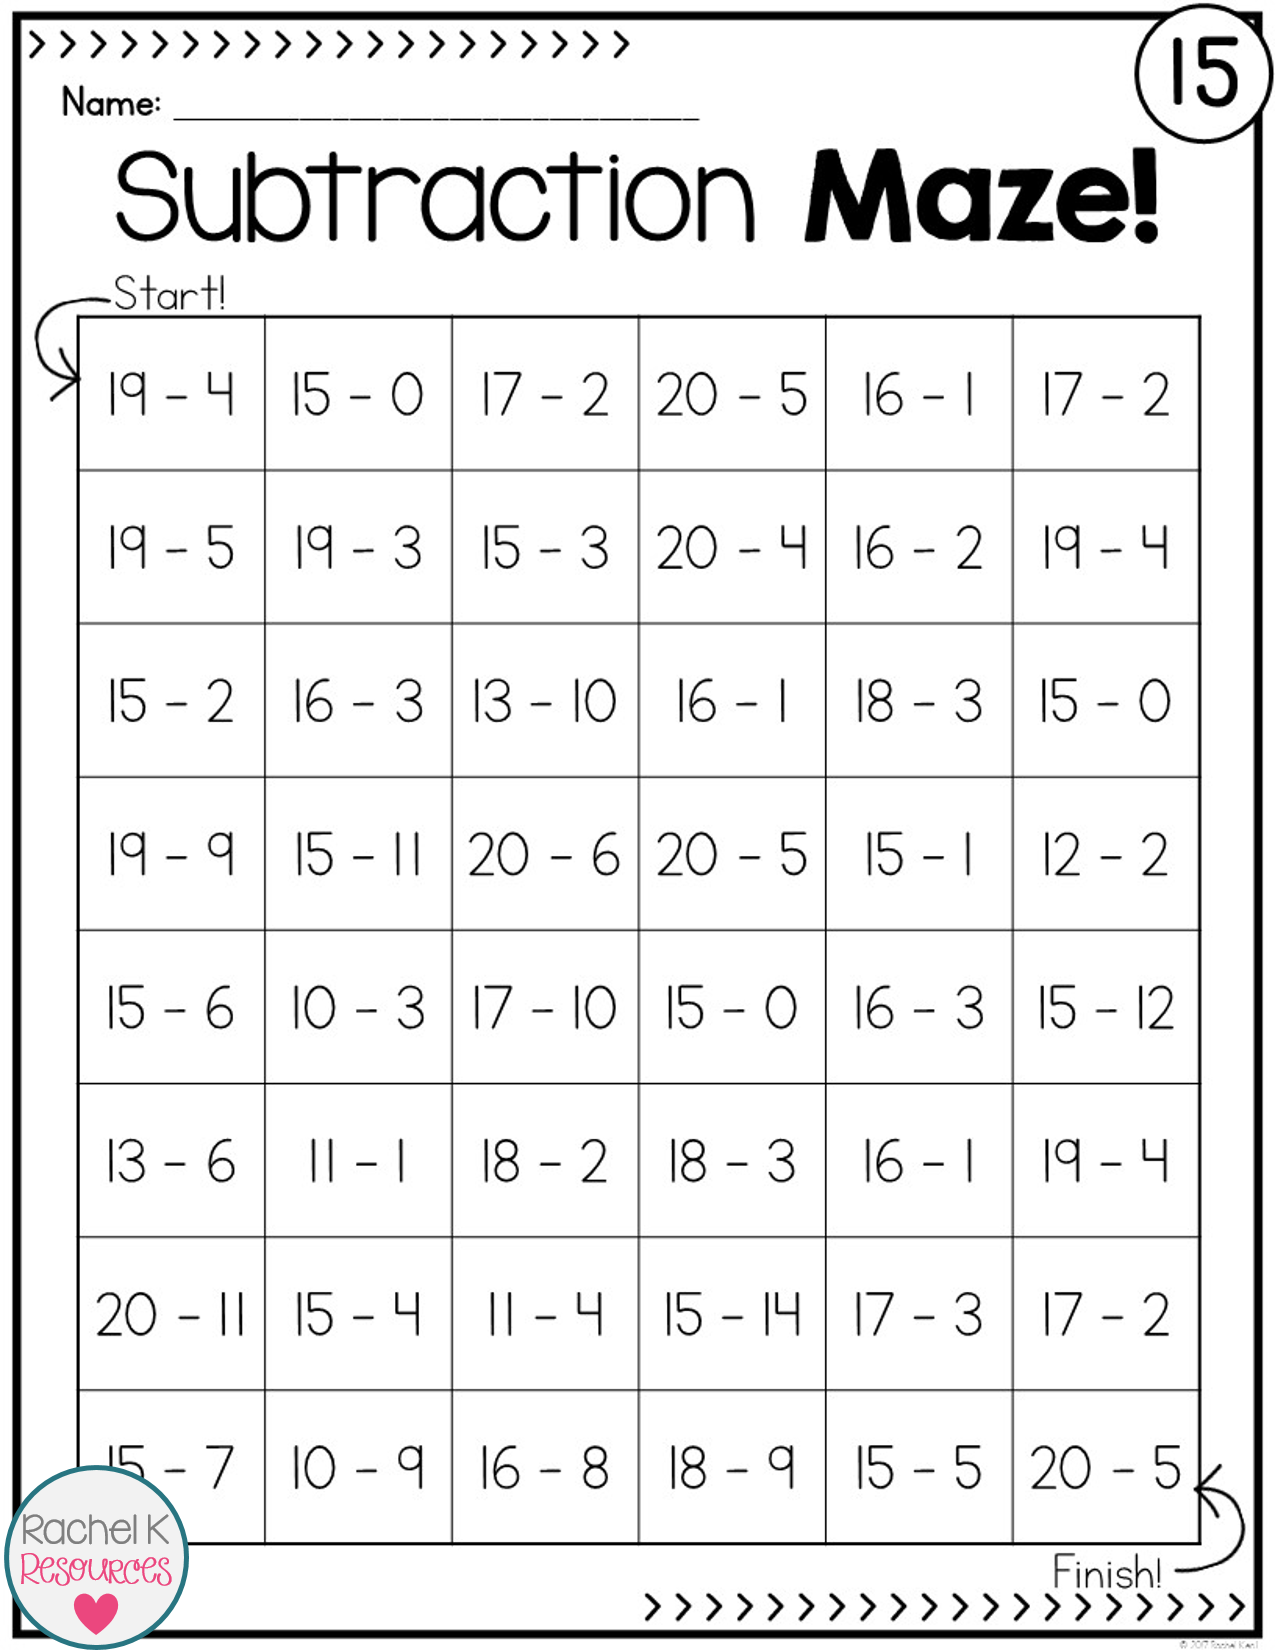 Subtraction Practice Mazes Math subtraction, Fun math